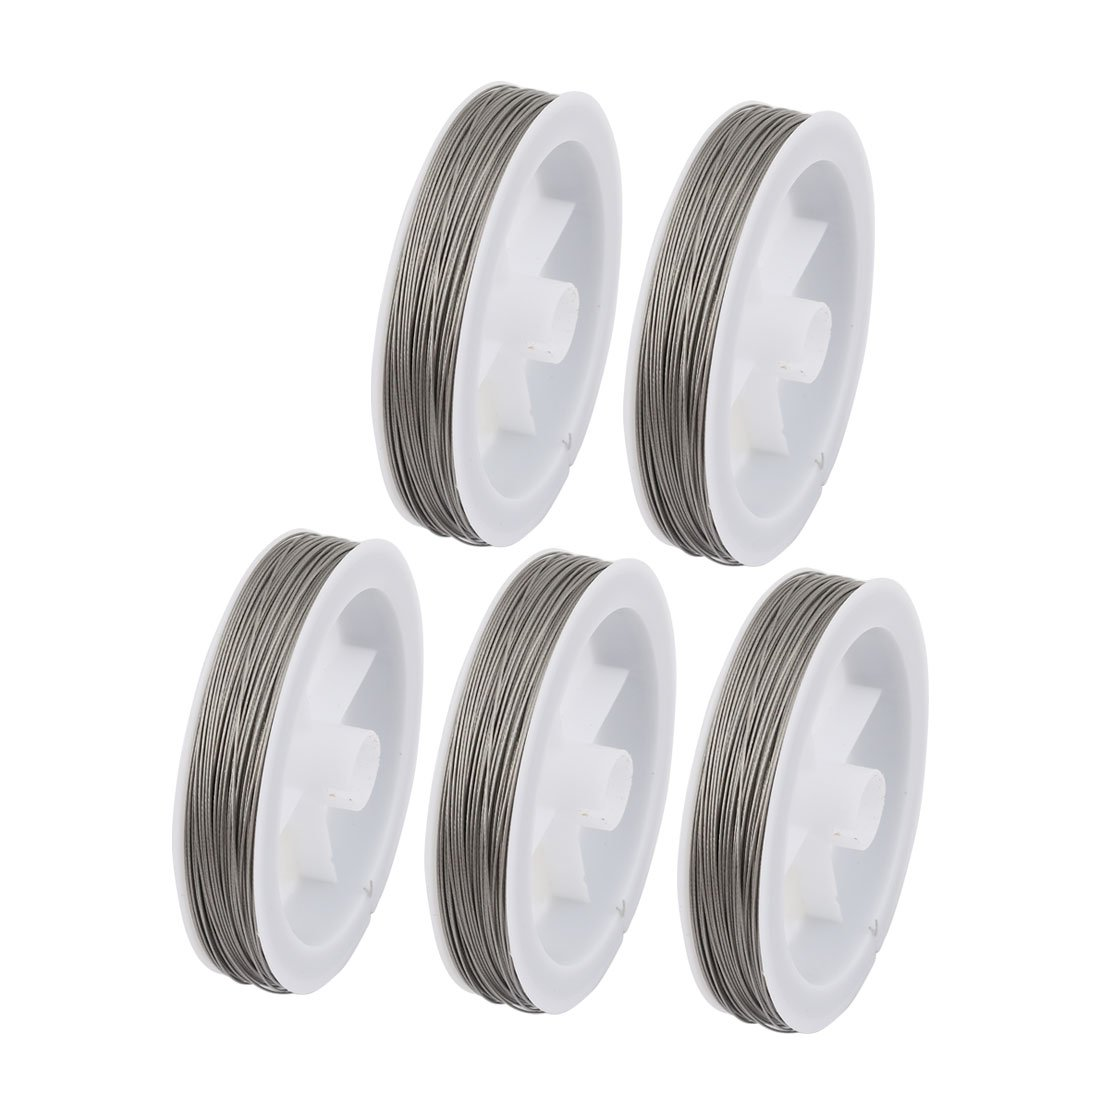 uxcell 5pcs 0.45mm Diameter 100 Meters Long Steel Wire Light Accessory for Crystal Bead